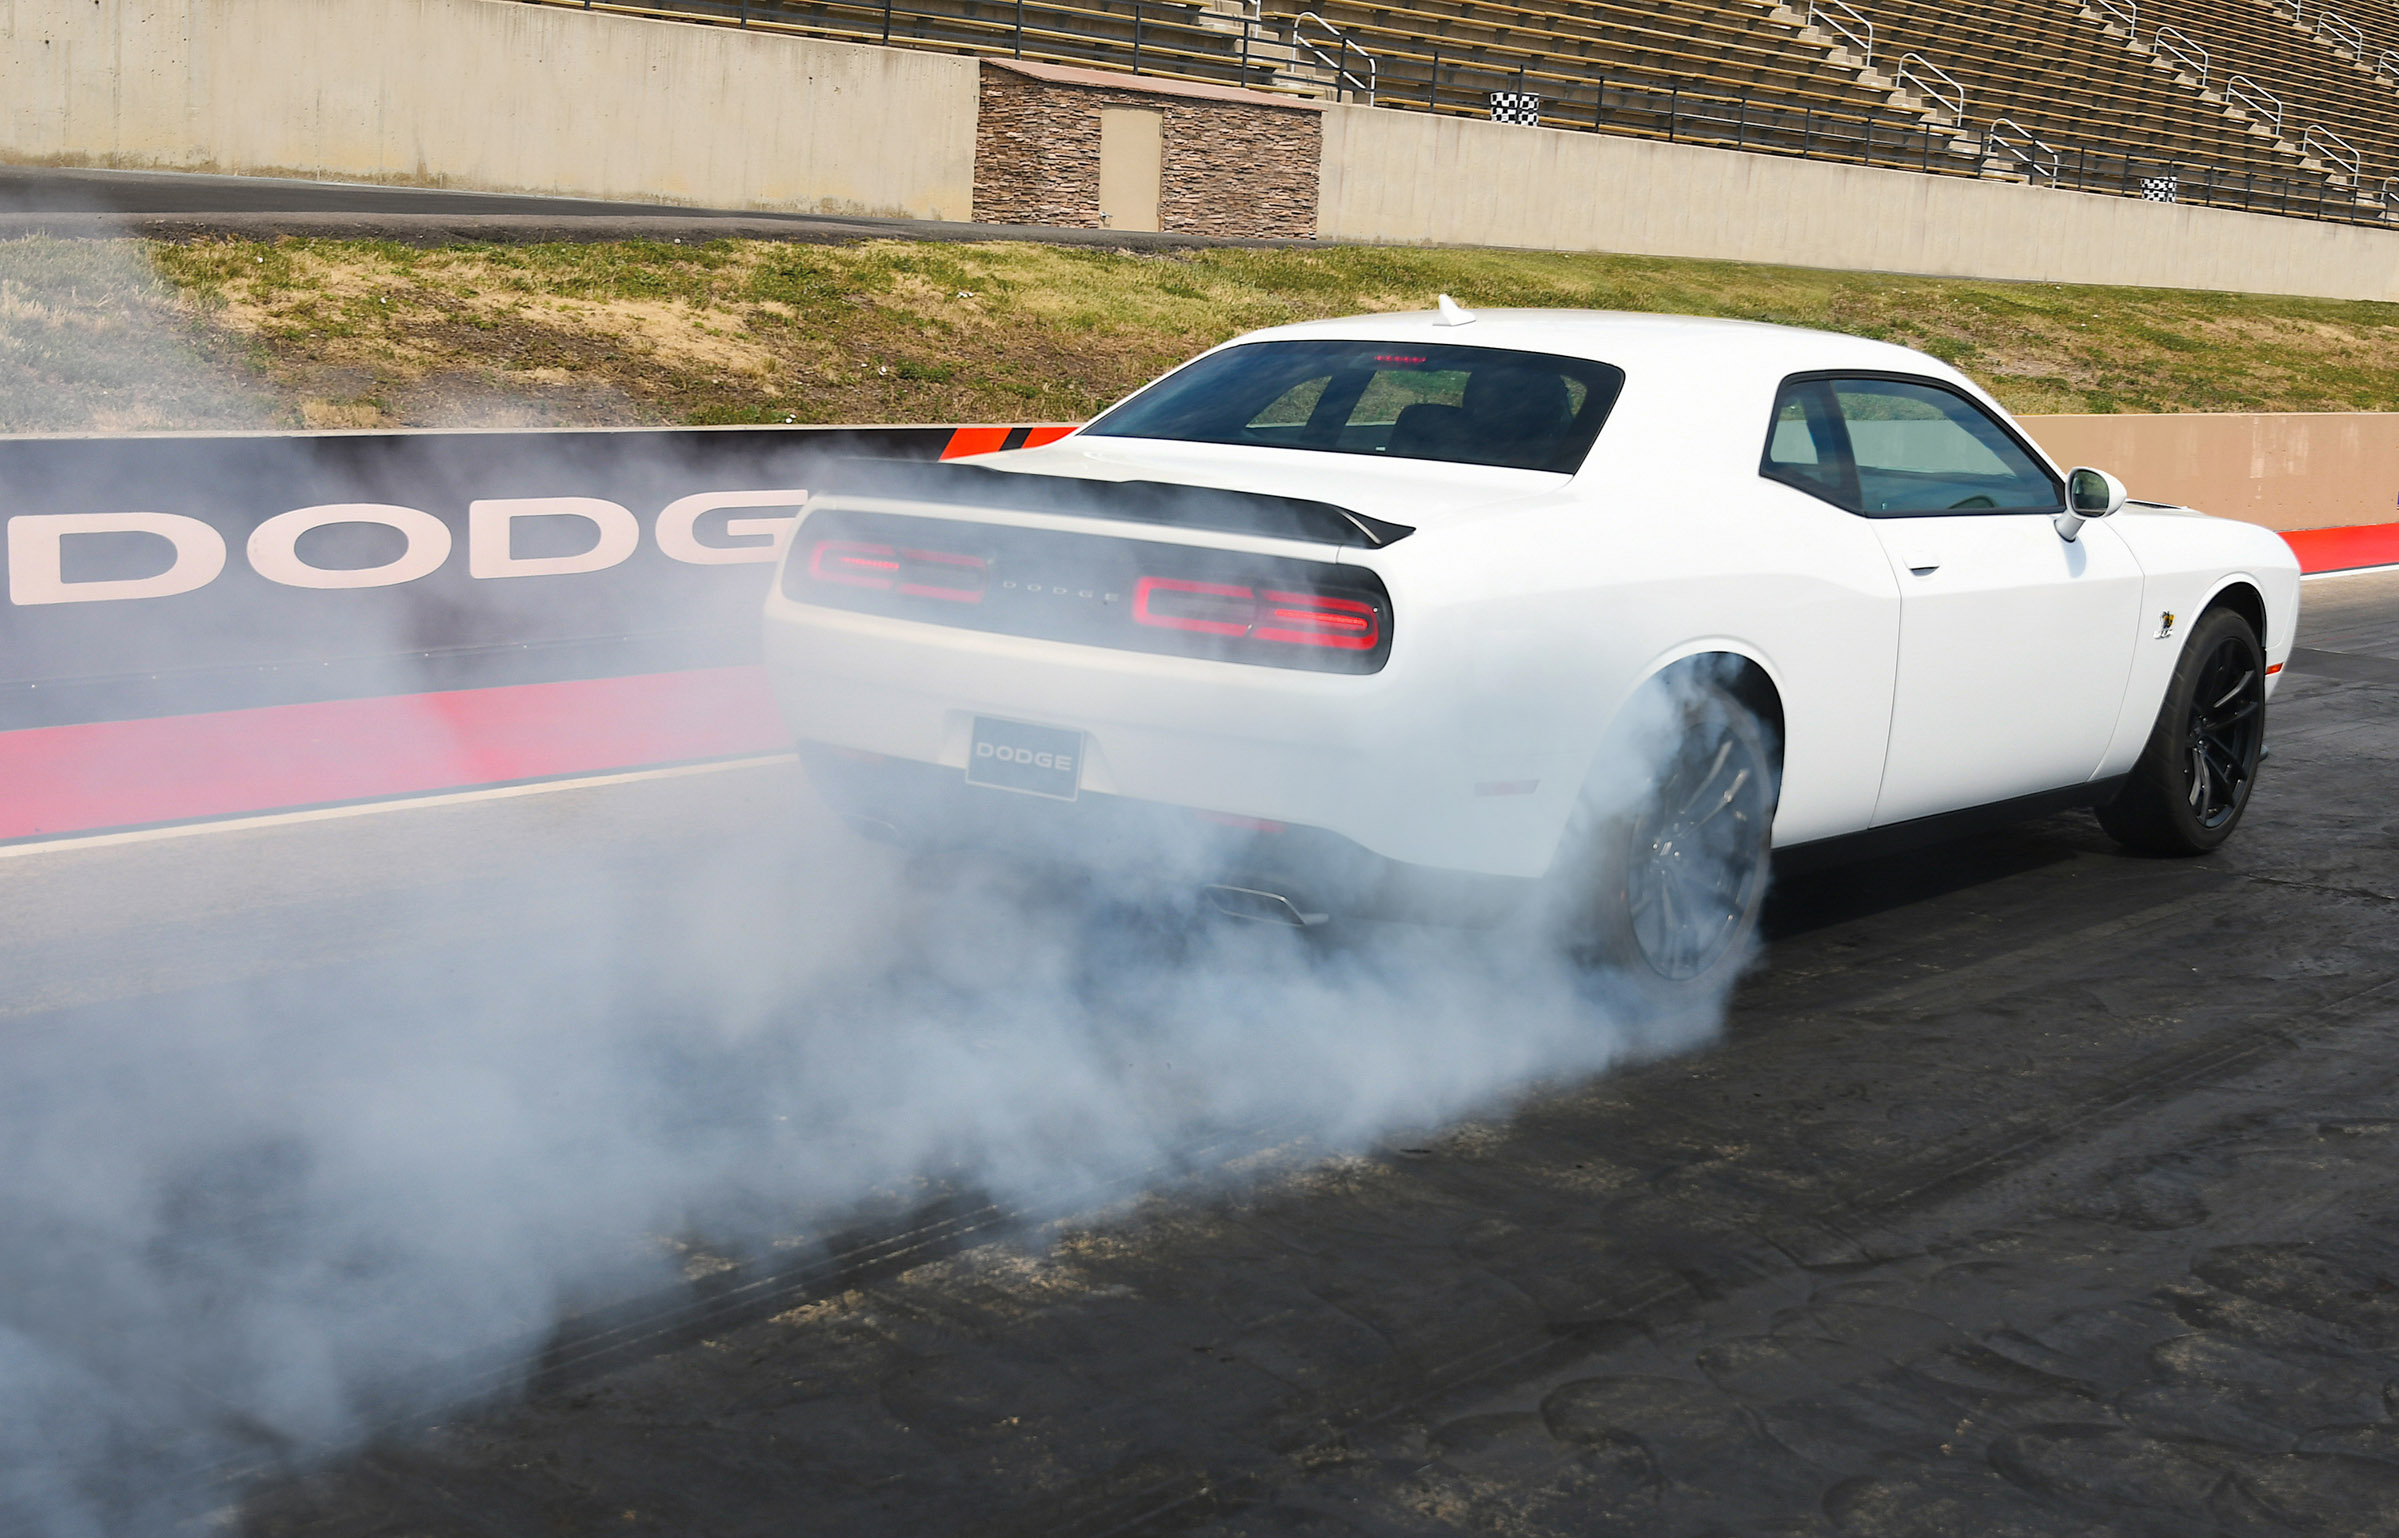 2019 Dodge Challenger R/T Scat Pack 1320  white car burnout rear